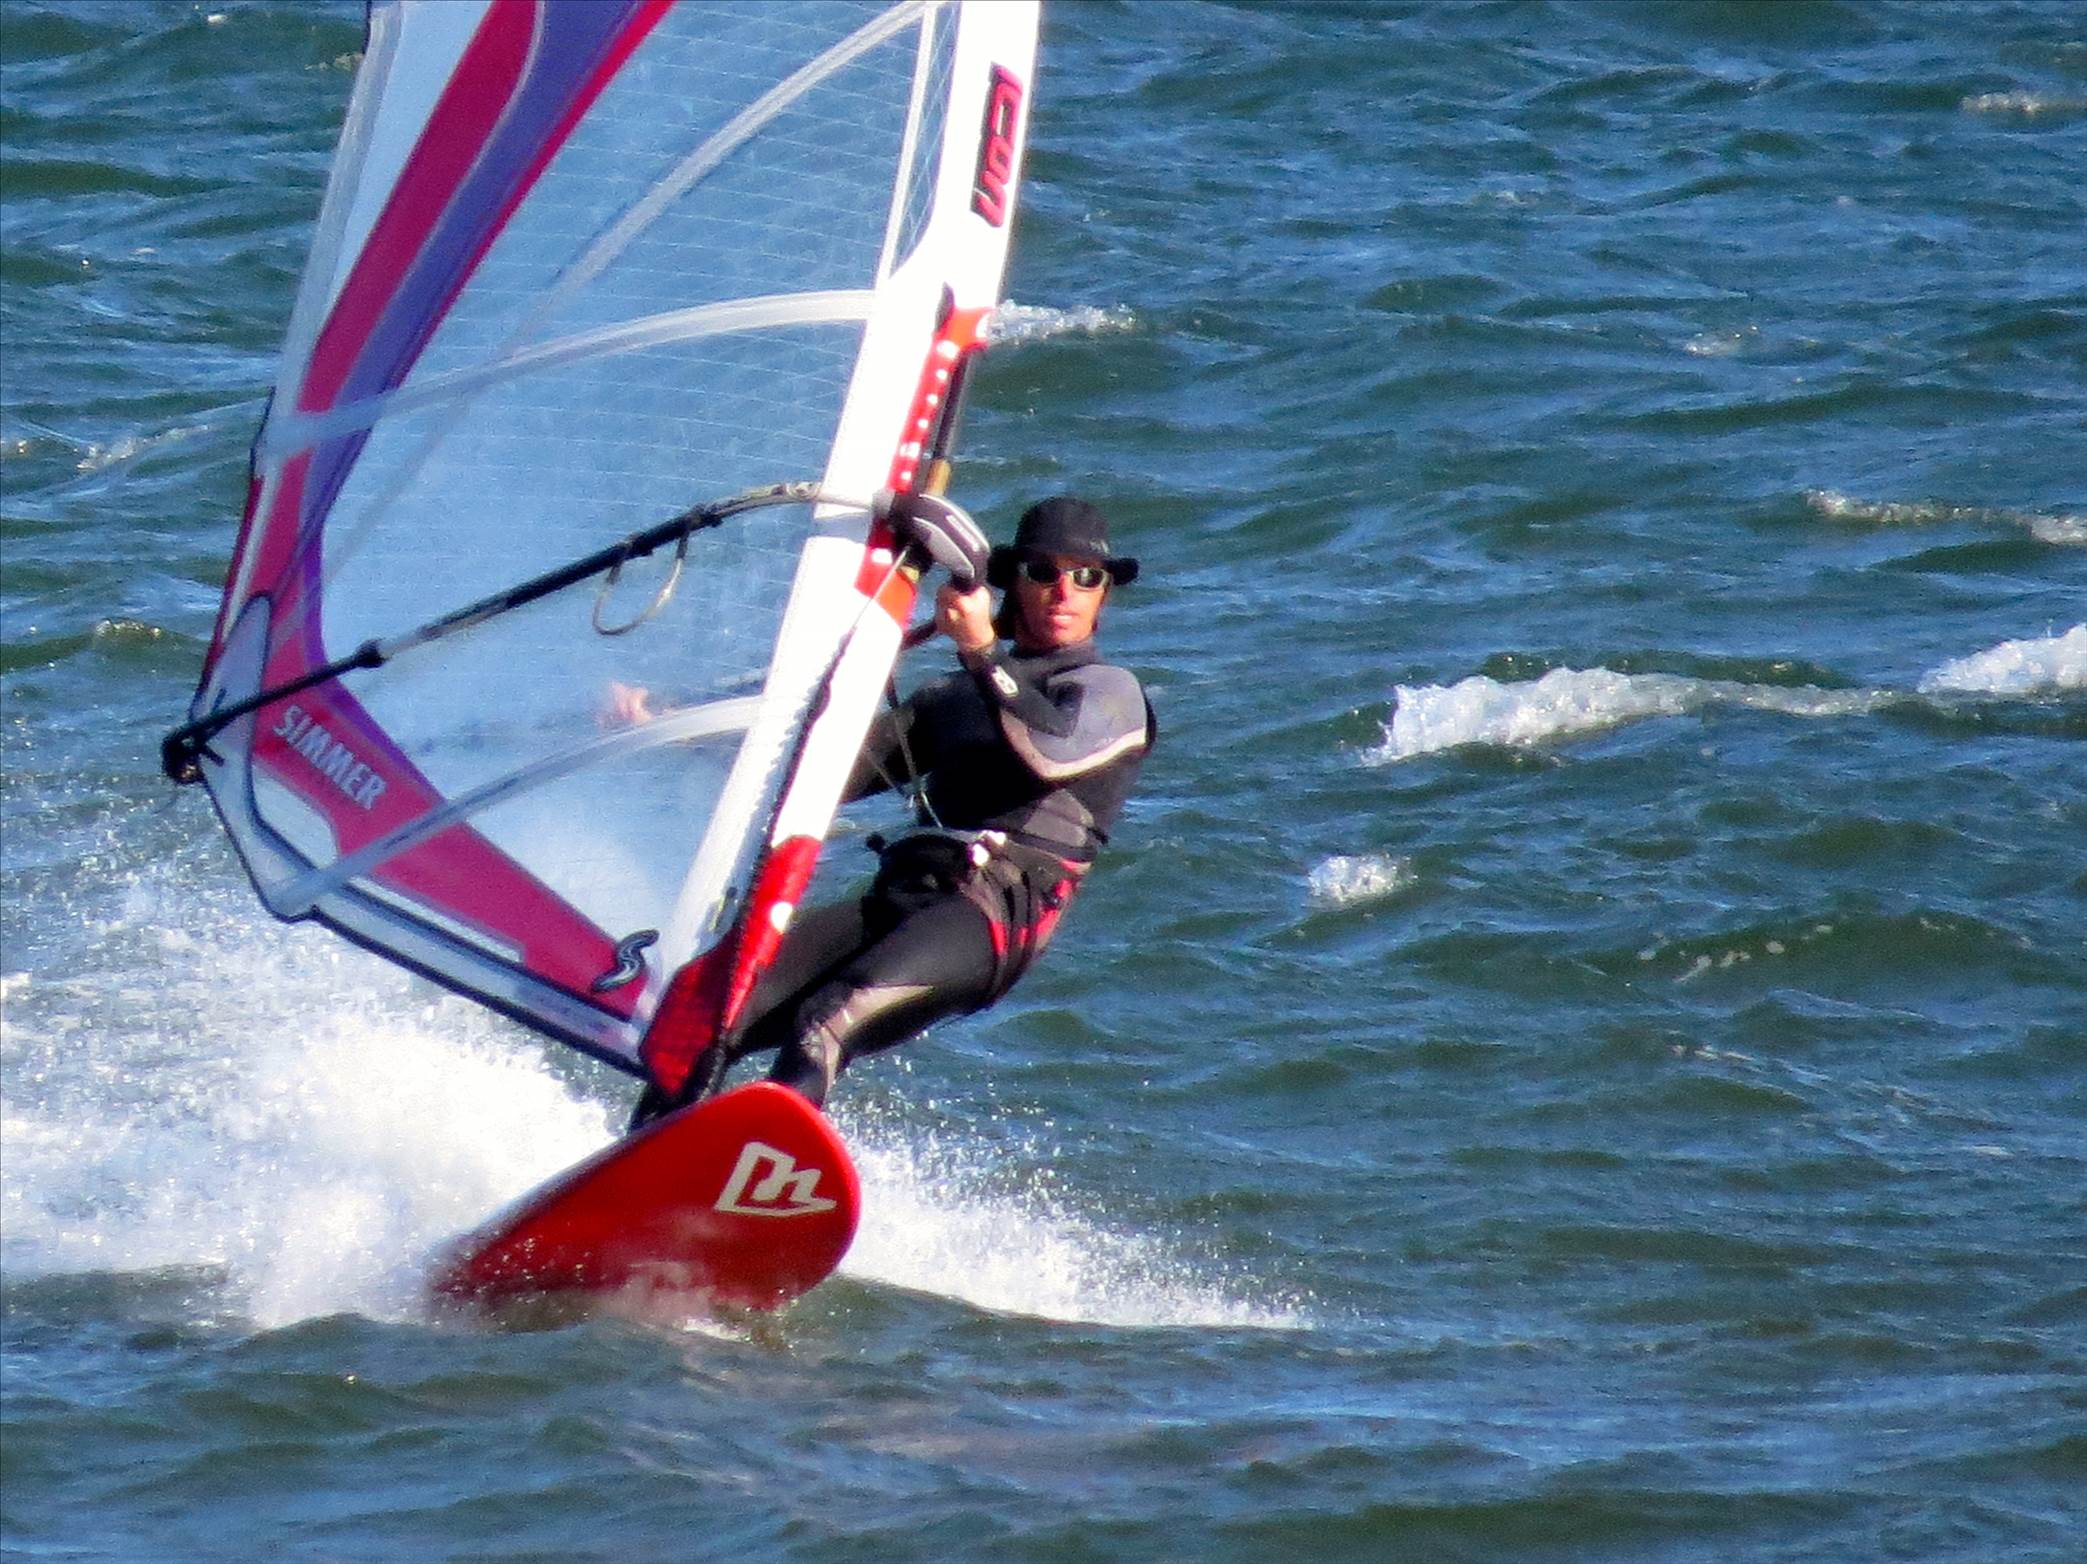 Windsurfing Photo By Gav1 Photo